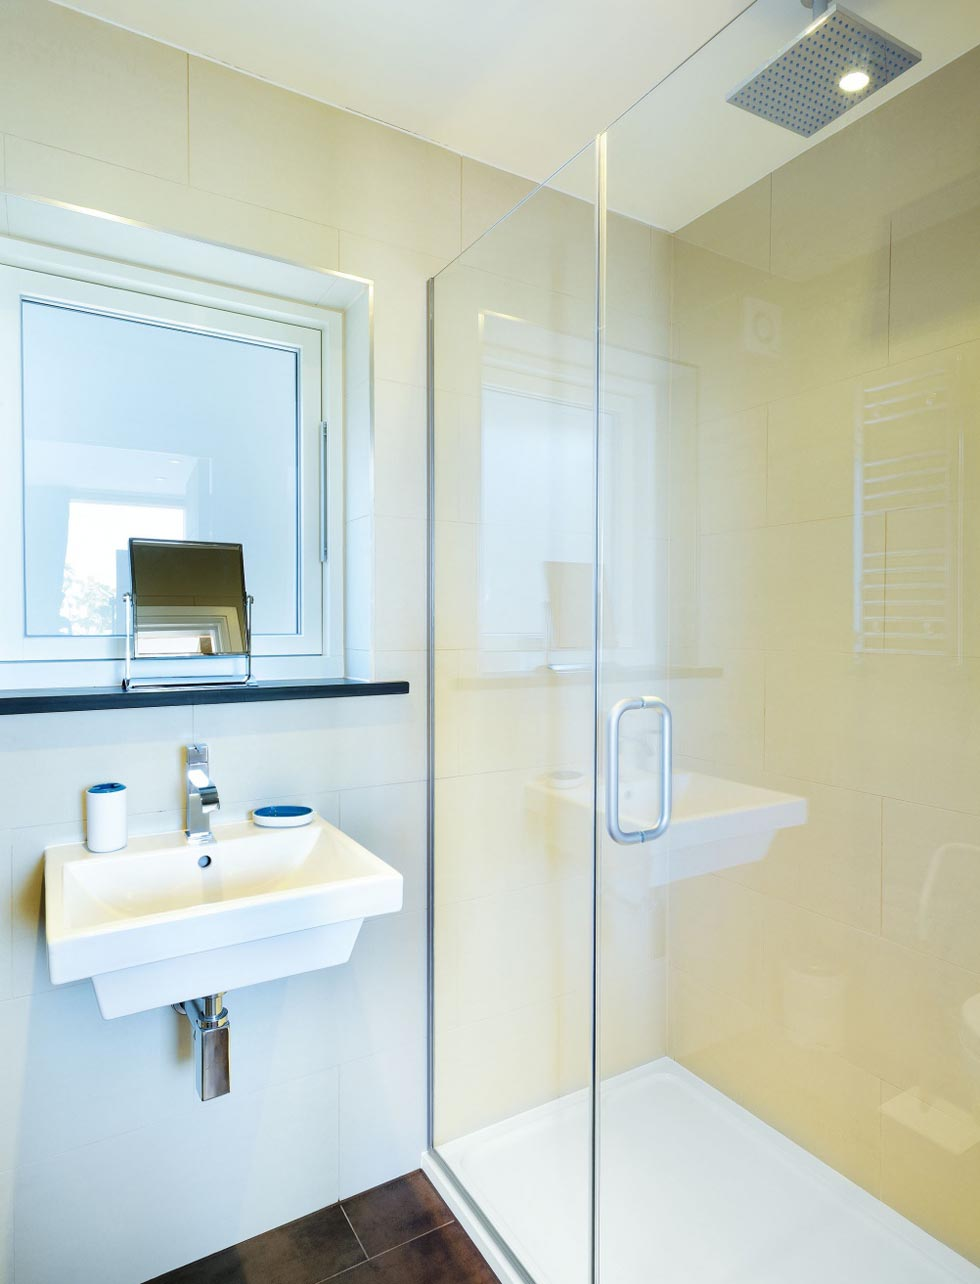 The two en suite bathrooms in the chalet are fitted out with porcelain tiles and sanitaryware from Bathstore